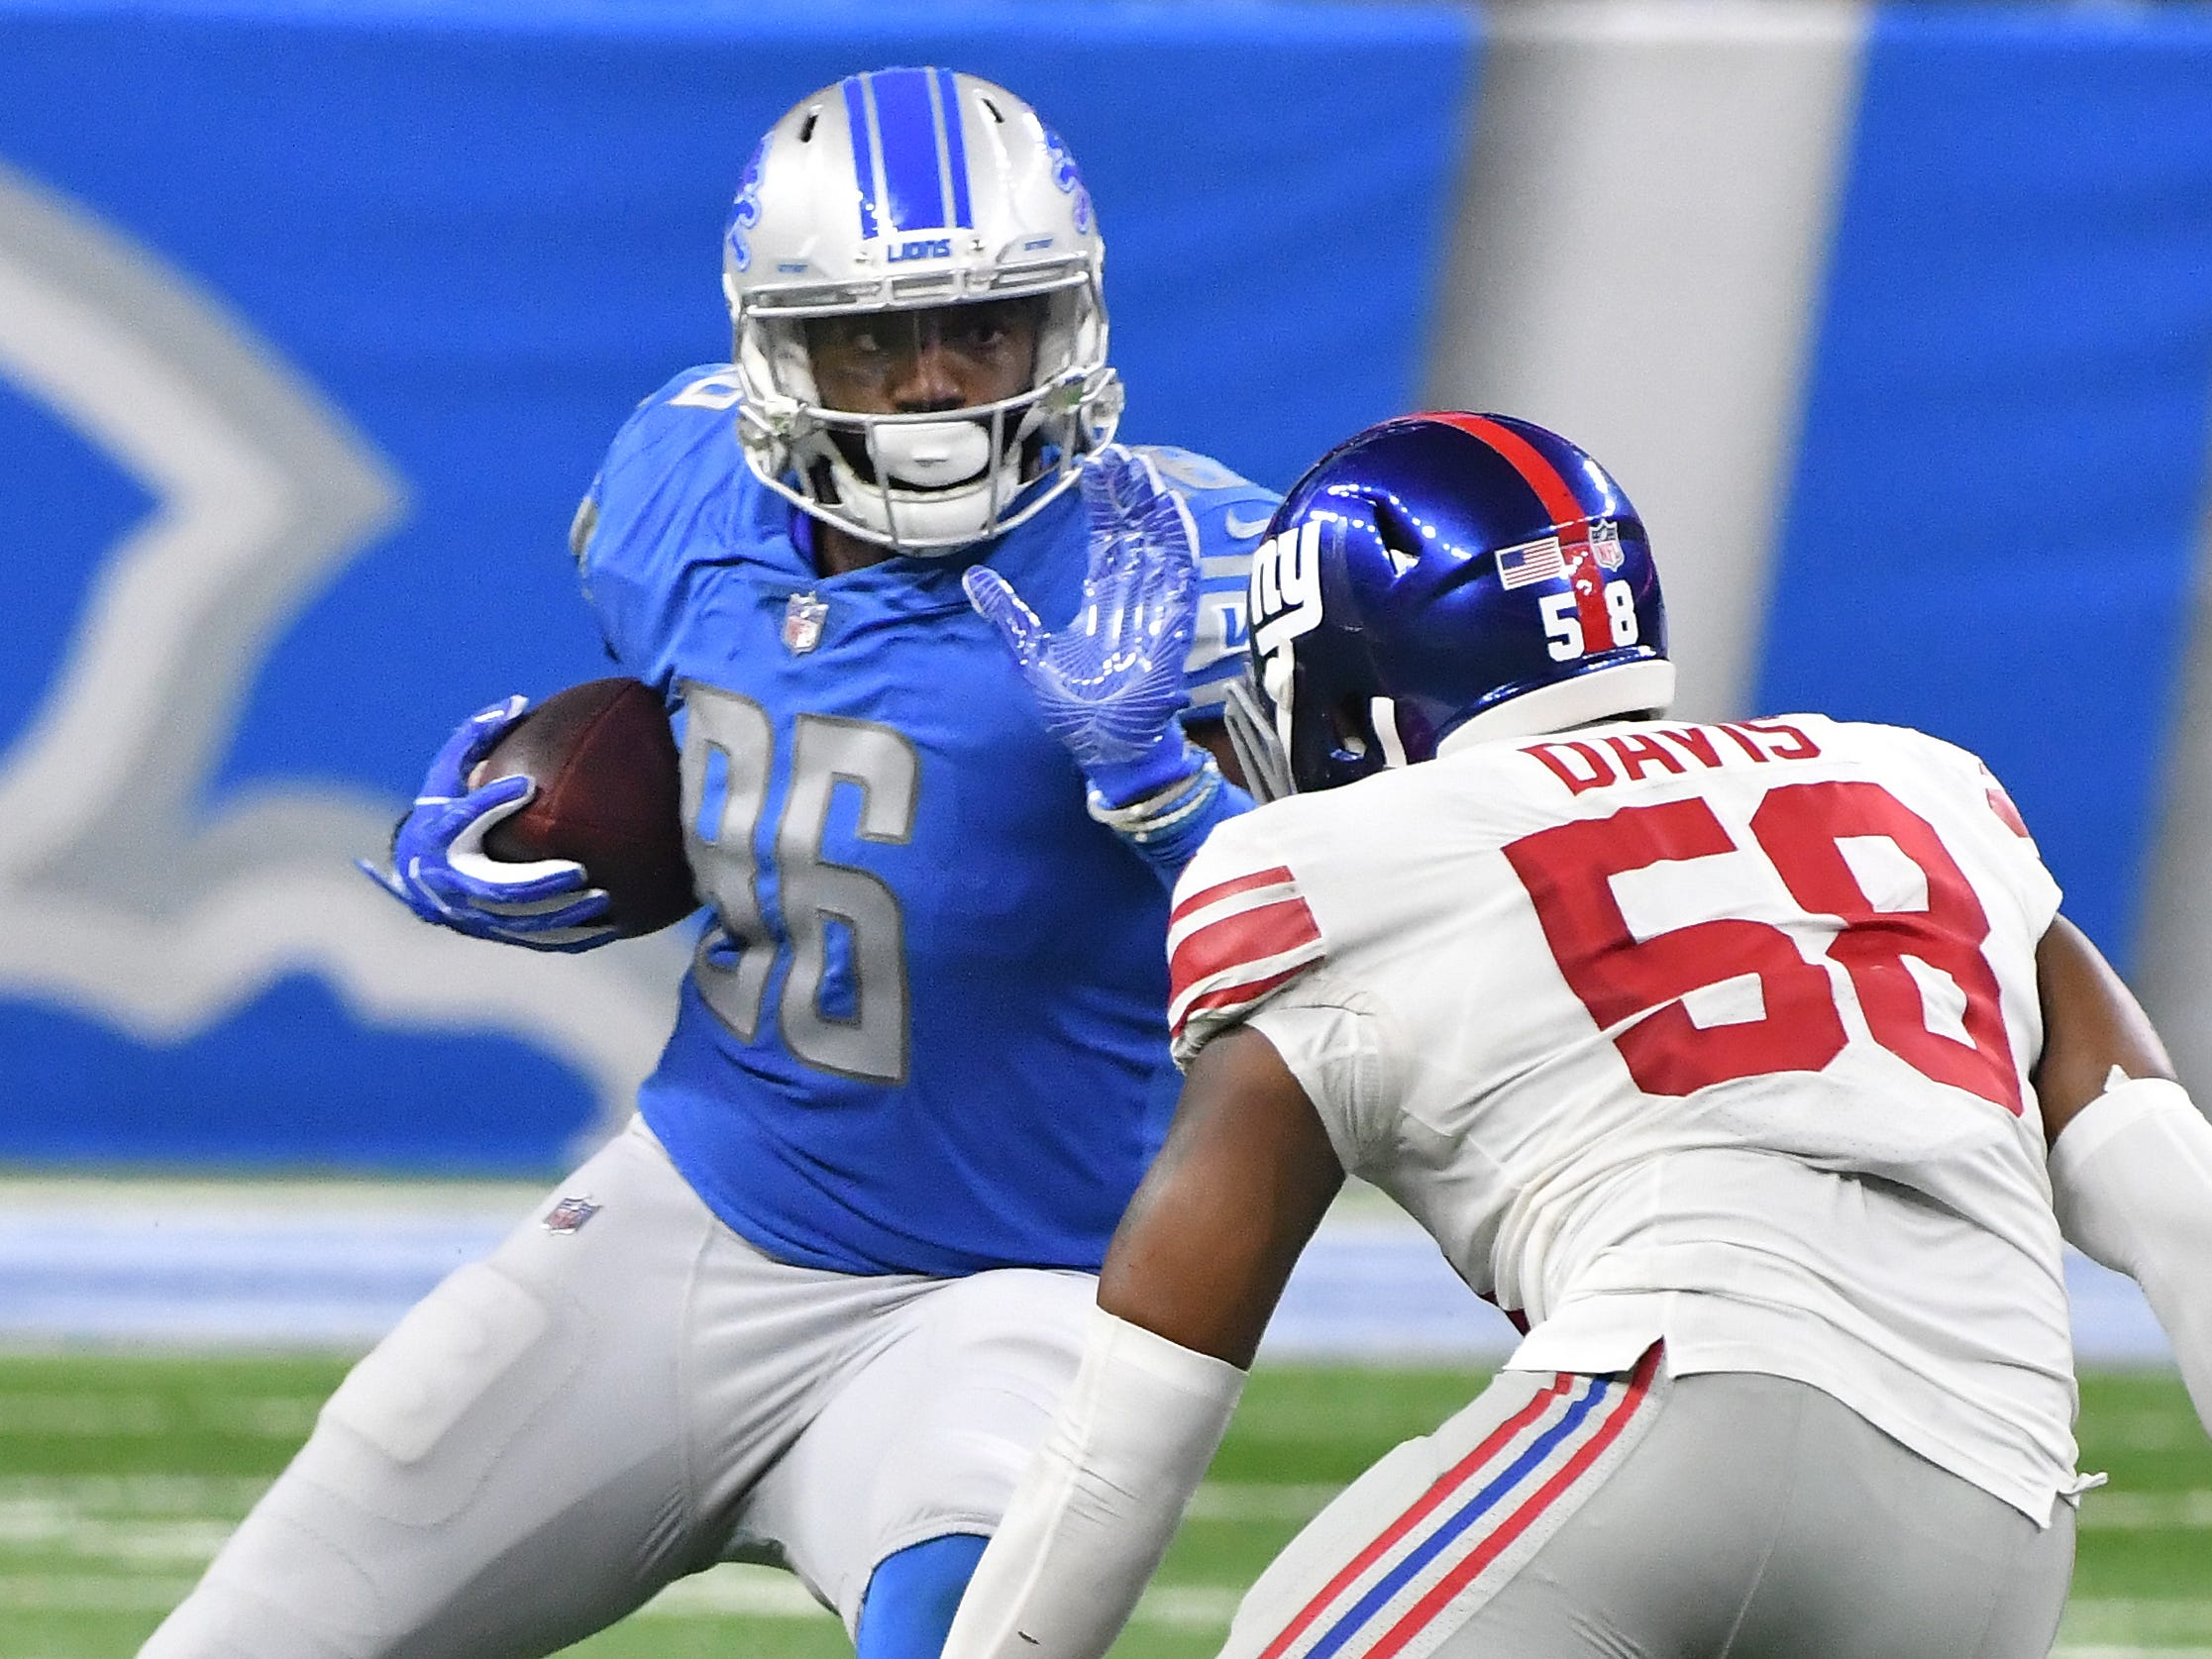 Lions tight end Marcus Lucas works against Giants' Tae Davis in the fourth quarter.